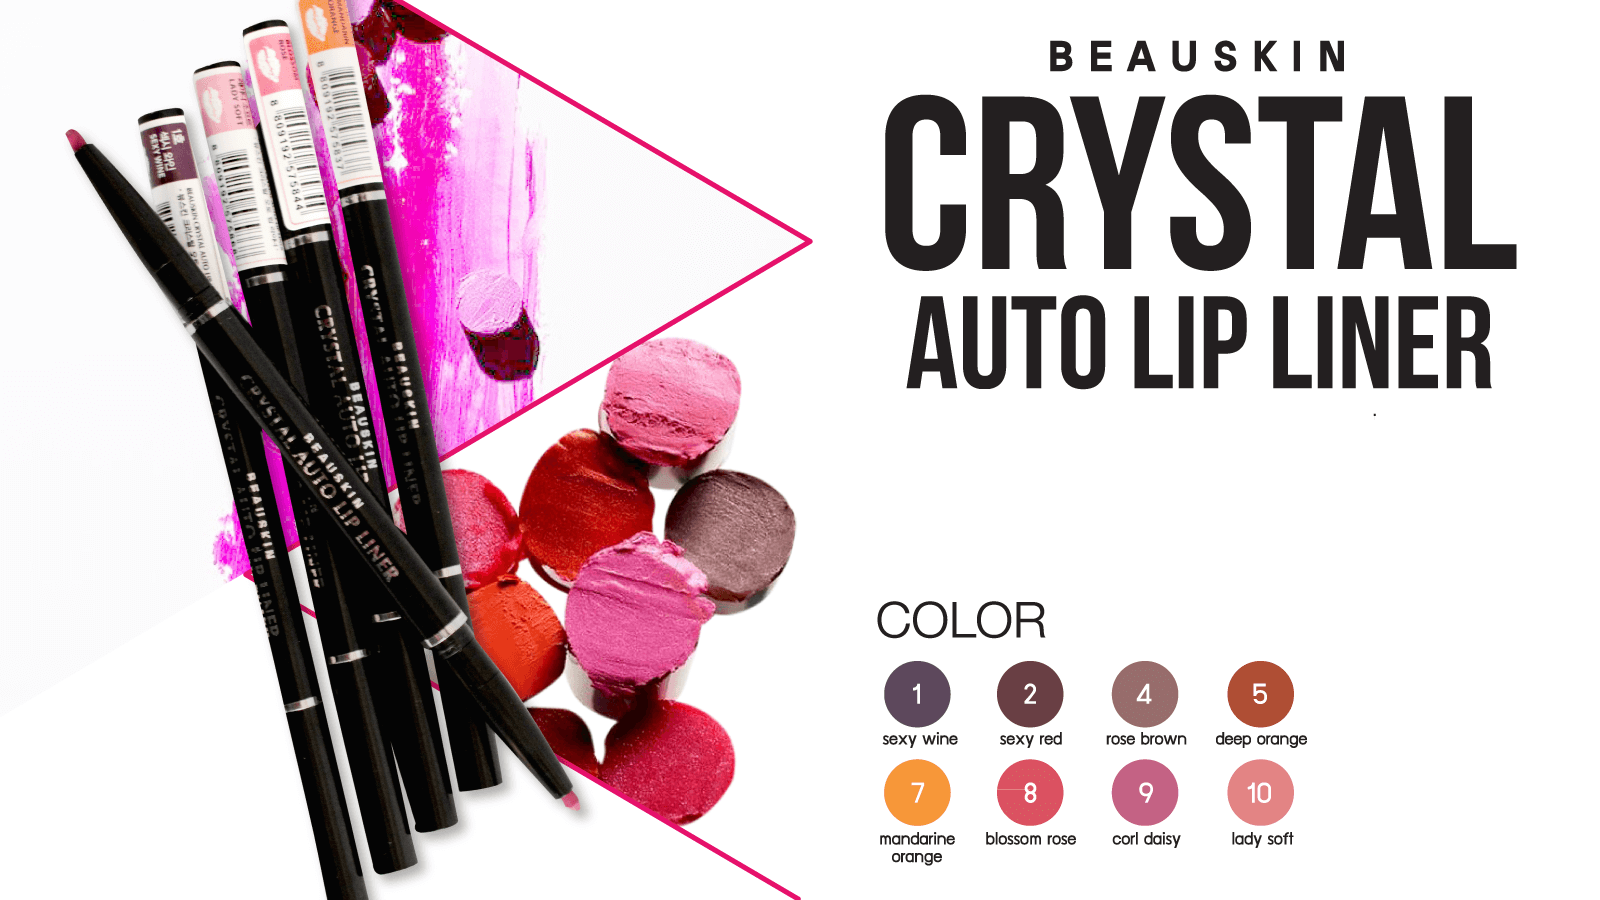 Beauskin Crystal Auto Lip Liner.